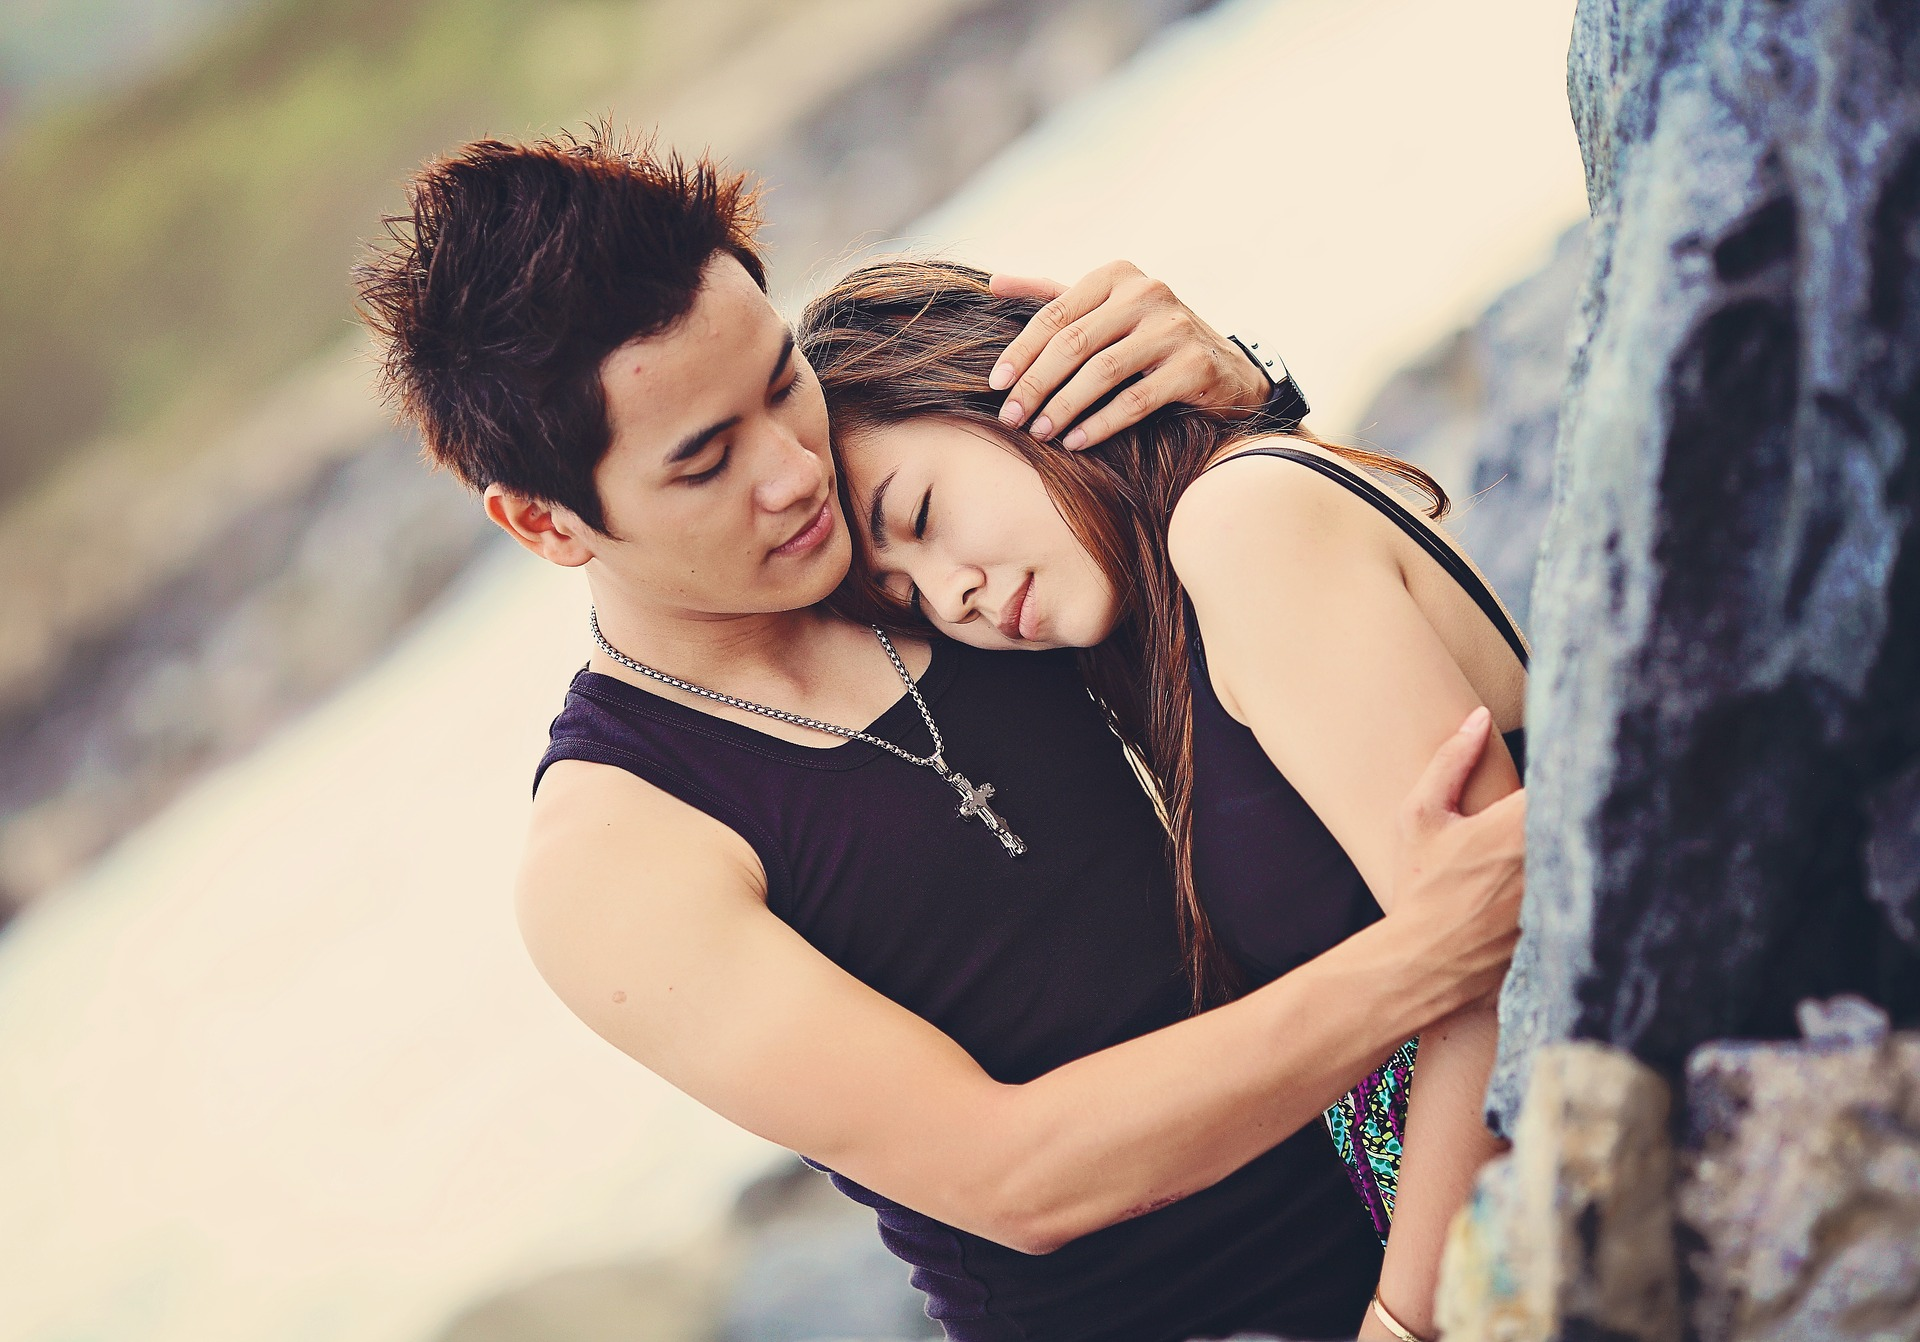 Vietnamese Lover, Activity, Human, Love, Lover, HQ Photo